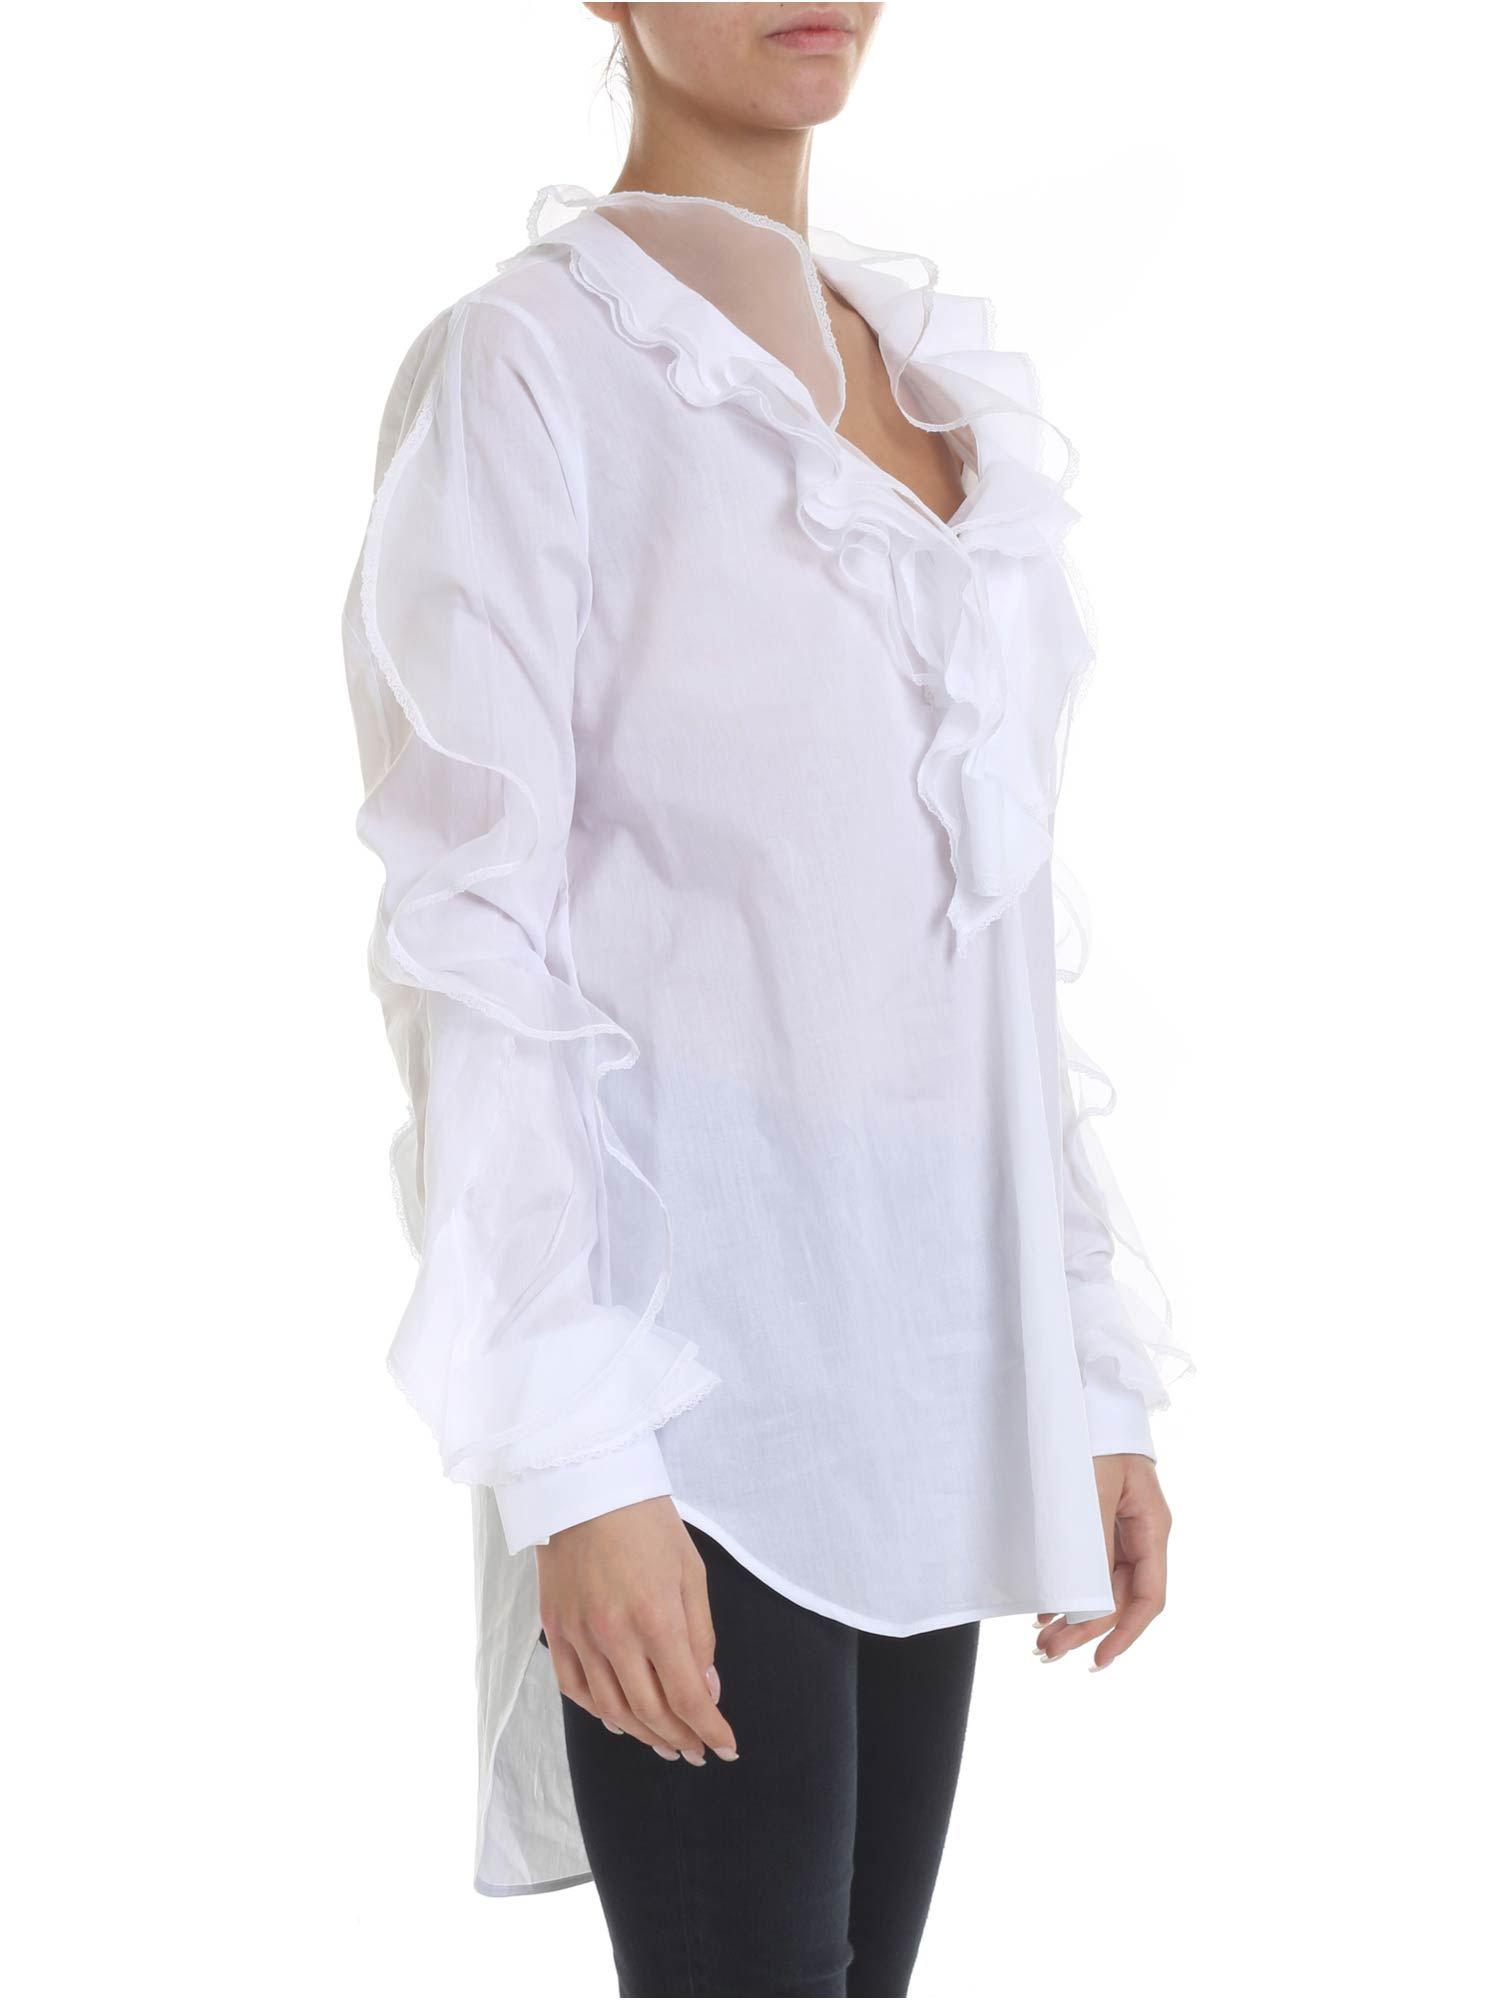 73be3d65827704 Ermanno Scervino Blouse In White With Ruffles And Lace in White - Lyst